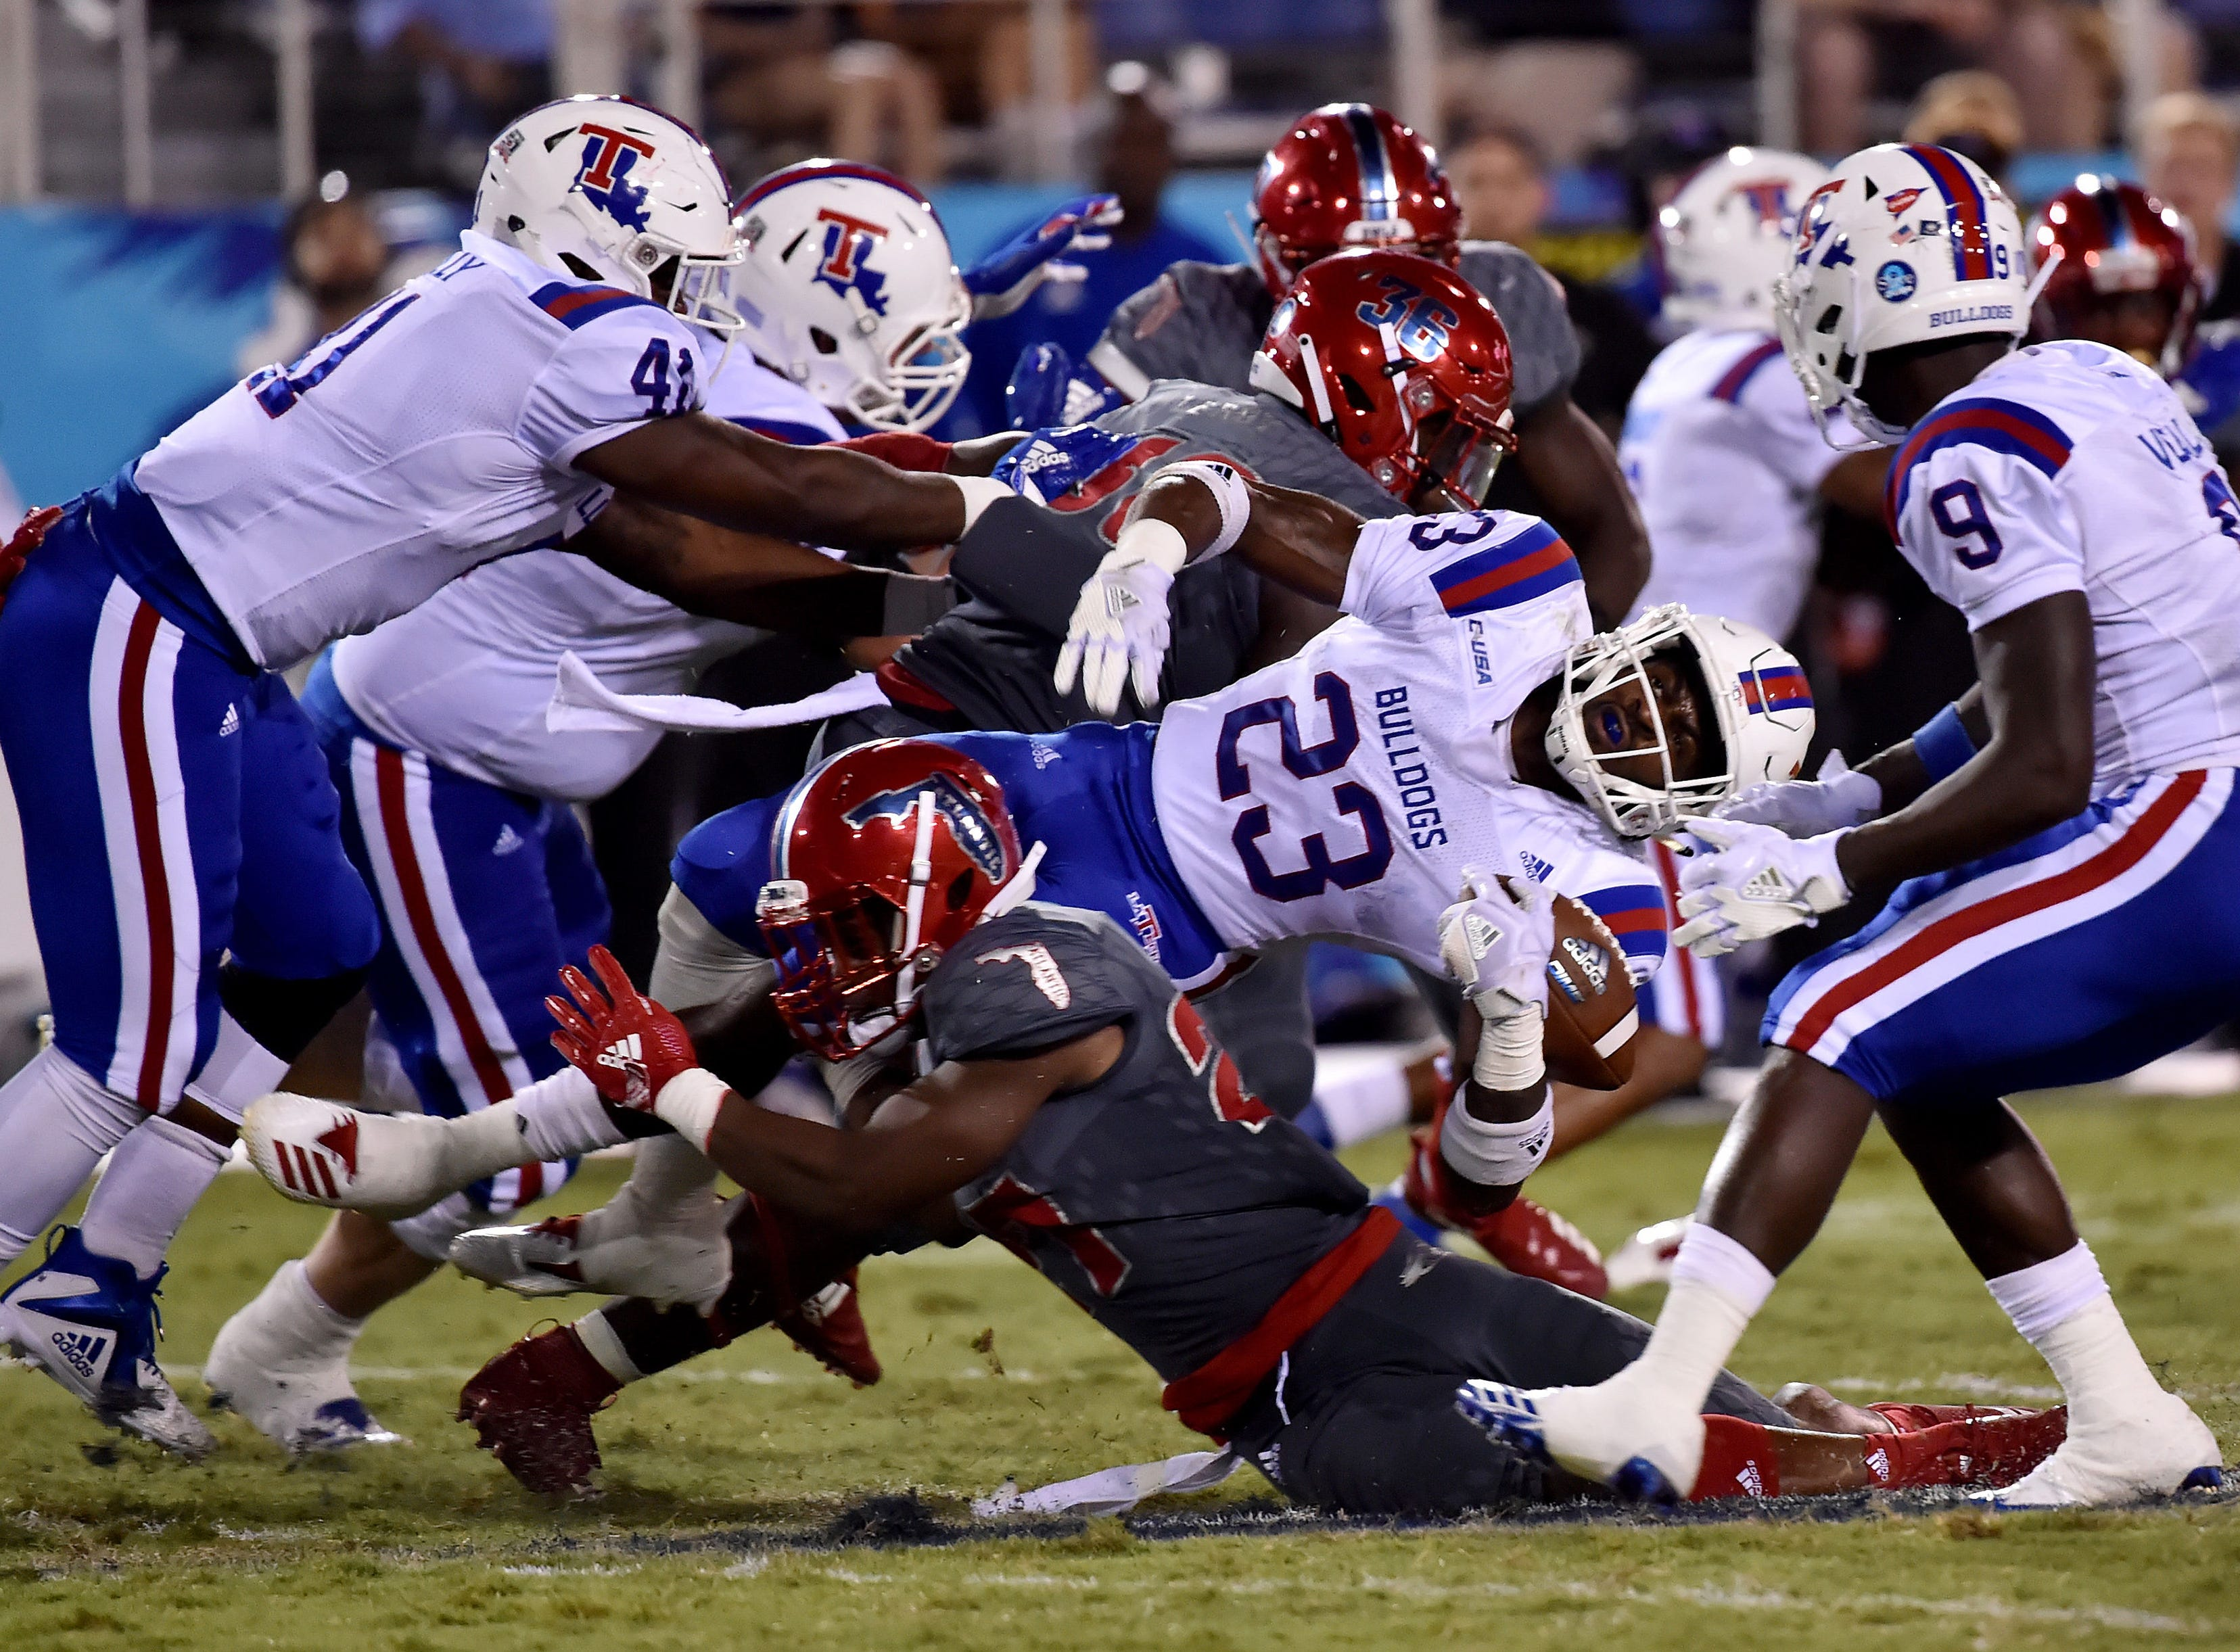 Florida Atlantic Owls safety Da'Von Brown (27) tackles Louisiana Tech Bulldogs running back Jaqwis Dancy (23) during the second half at FAU Football Stadium.